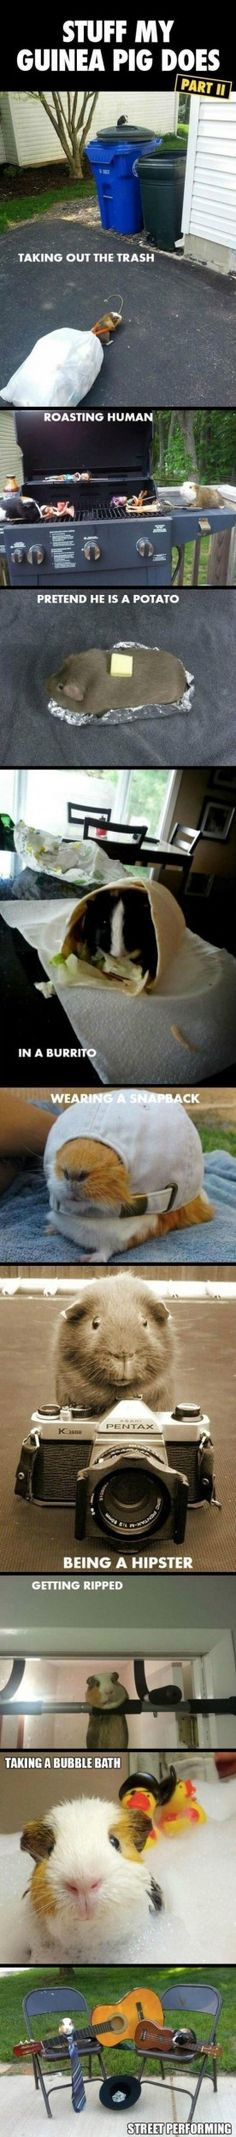 Funny Stuff My Guinea Pig Does - http://www.jokideo.com/funny-stuff-guinea-pig/